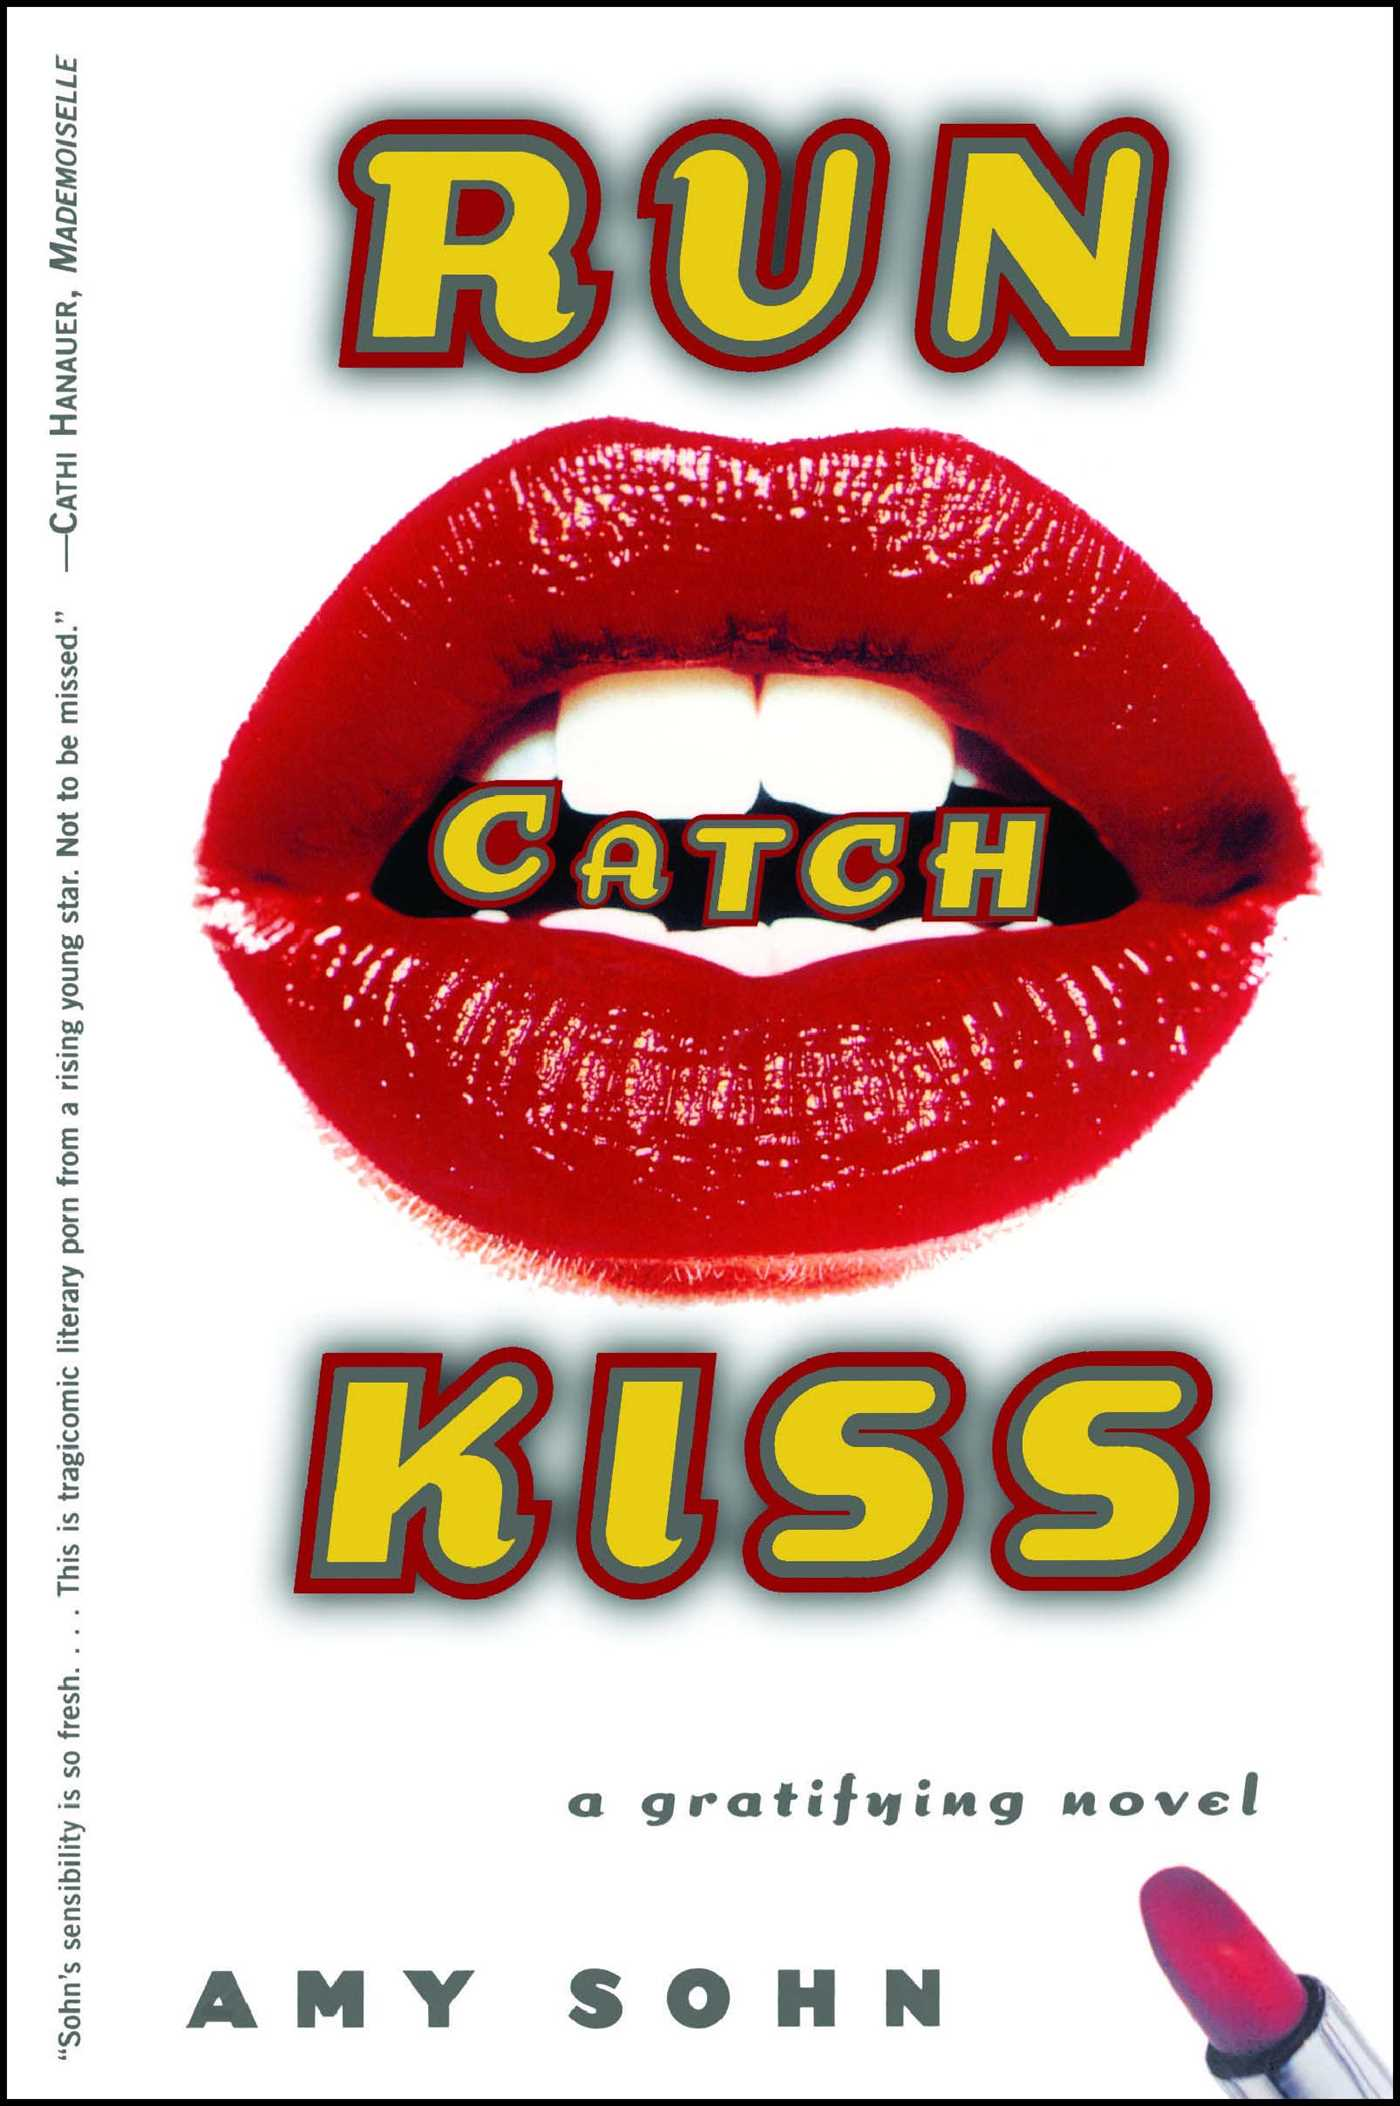 Actor Porno Madonna Sorry run catch kiss | bookamy sohn | official publisher page